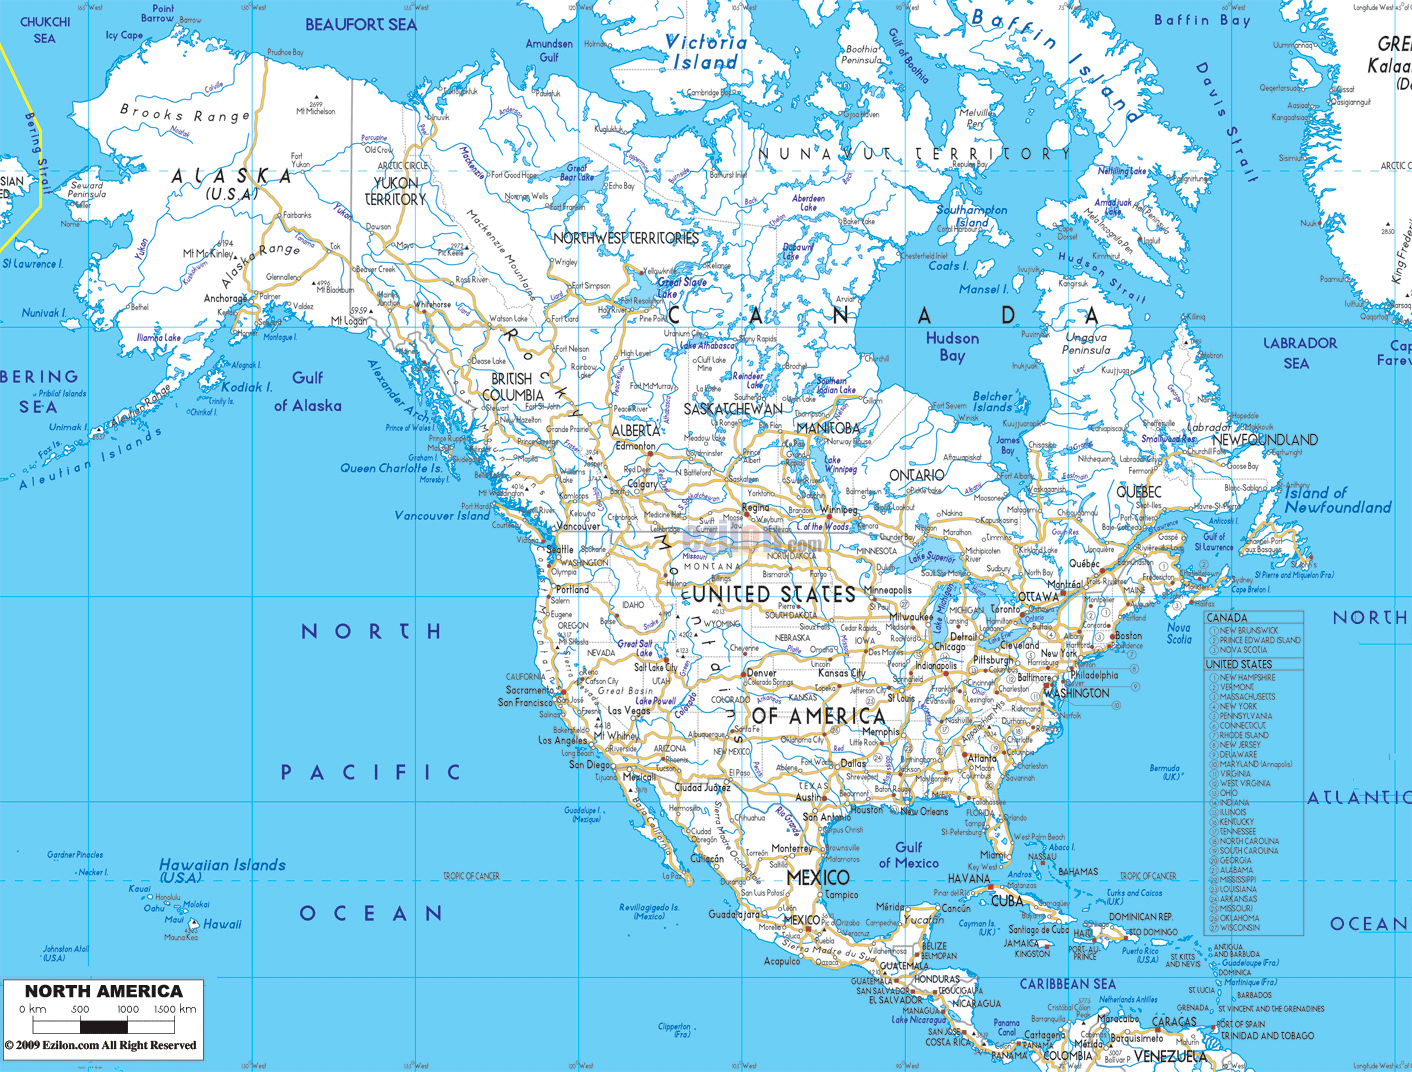 Blank Map Of The USA With All The American States And Capitals US - Eastern us road maps with states and cities